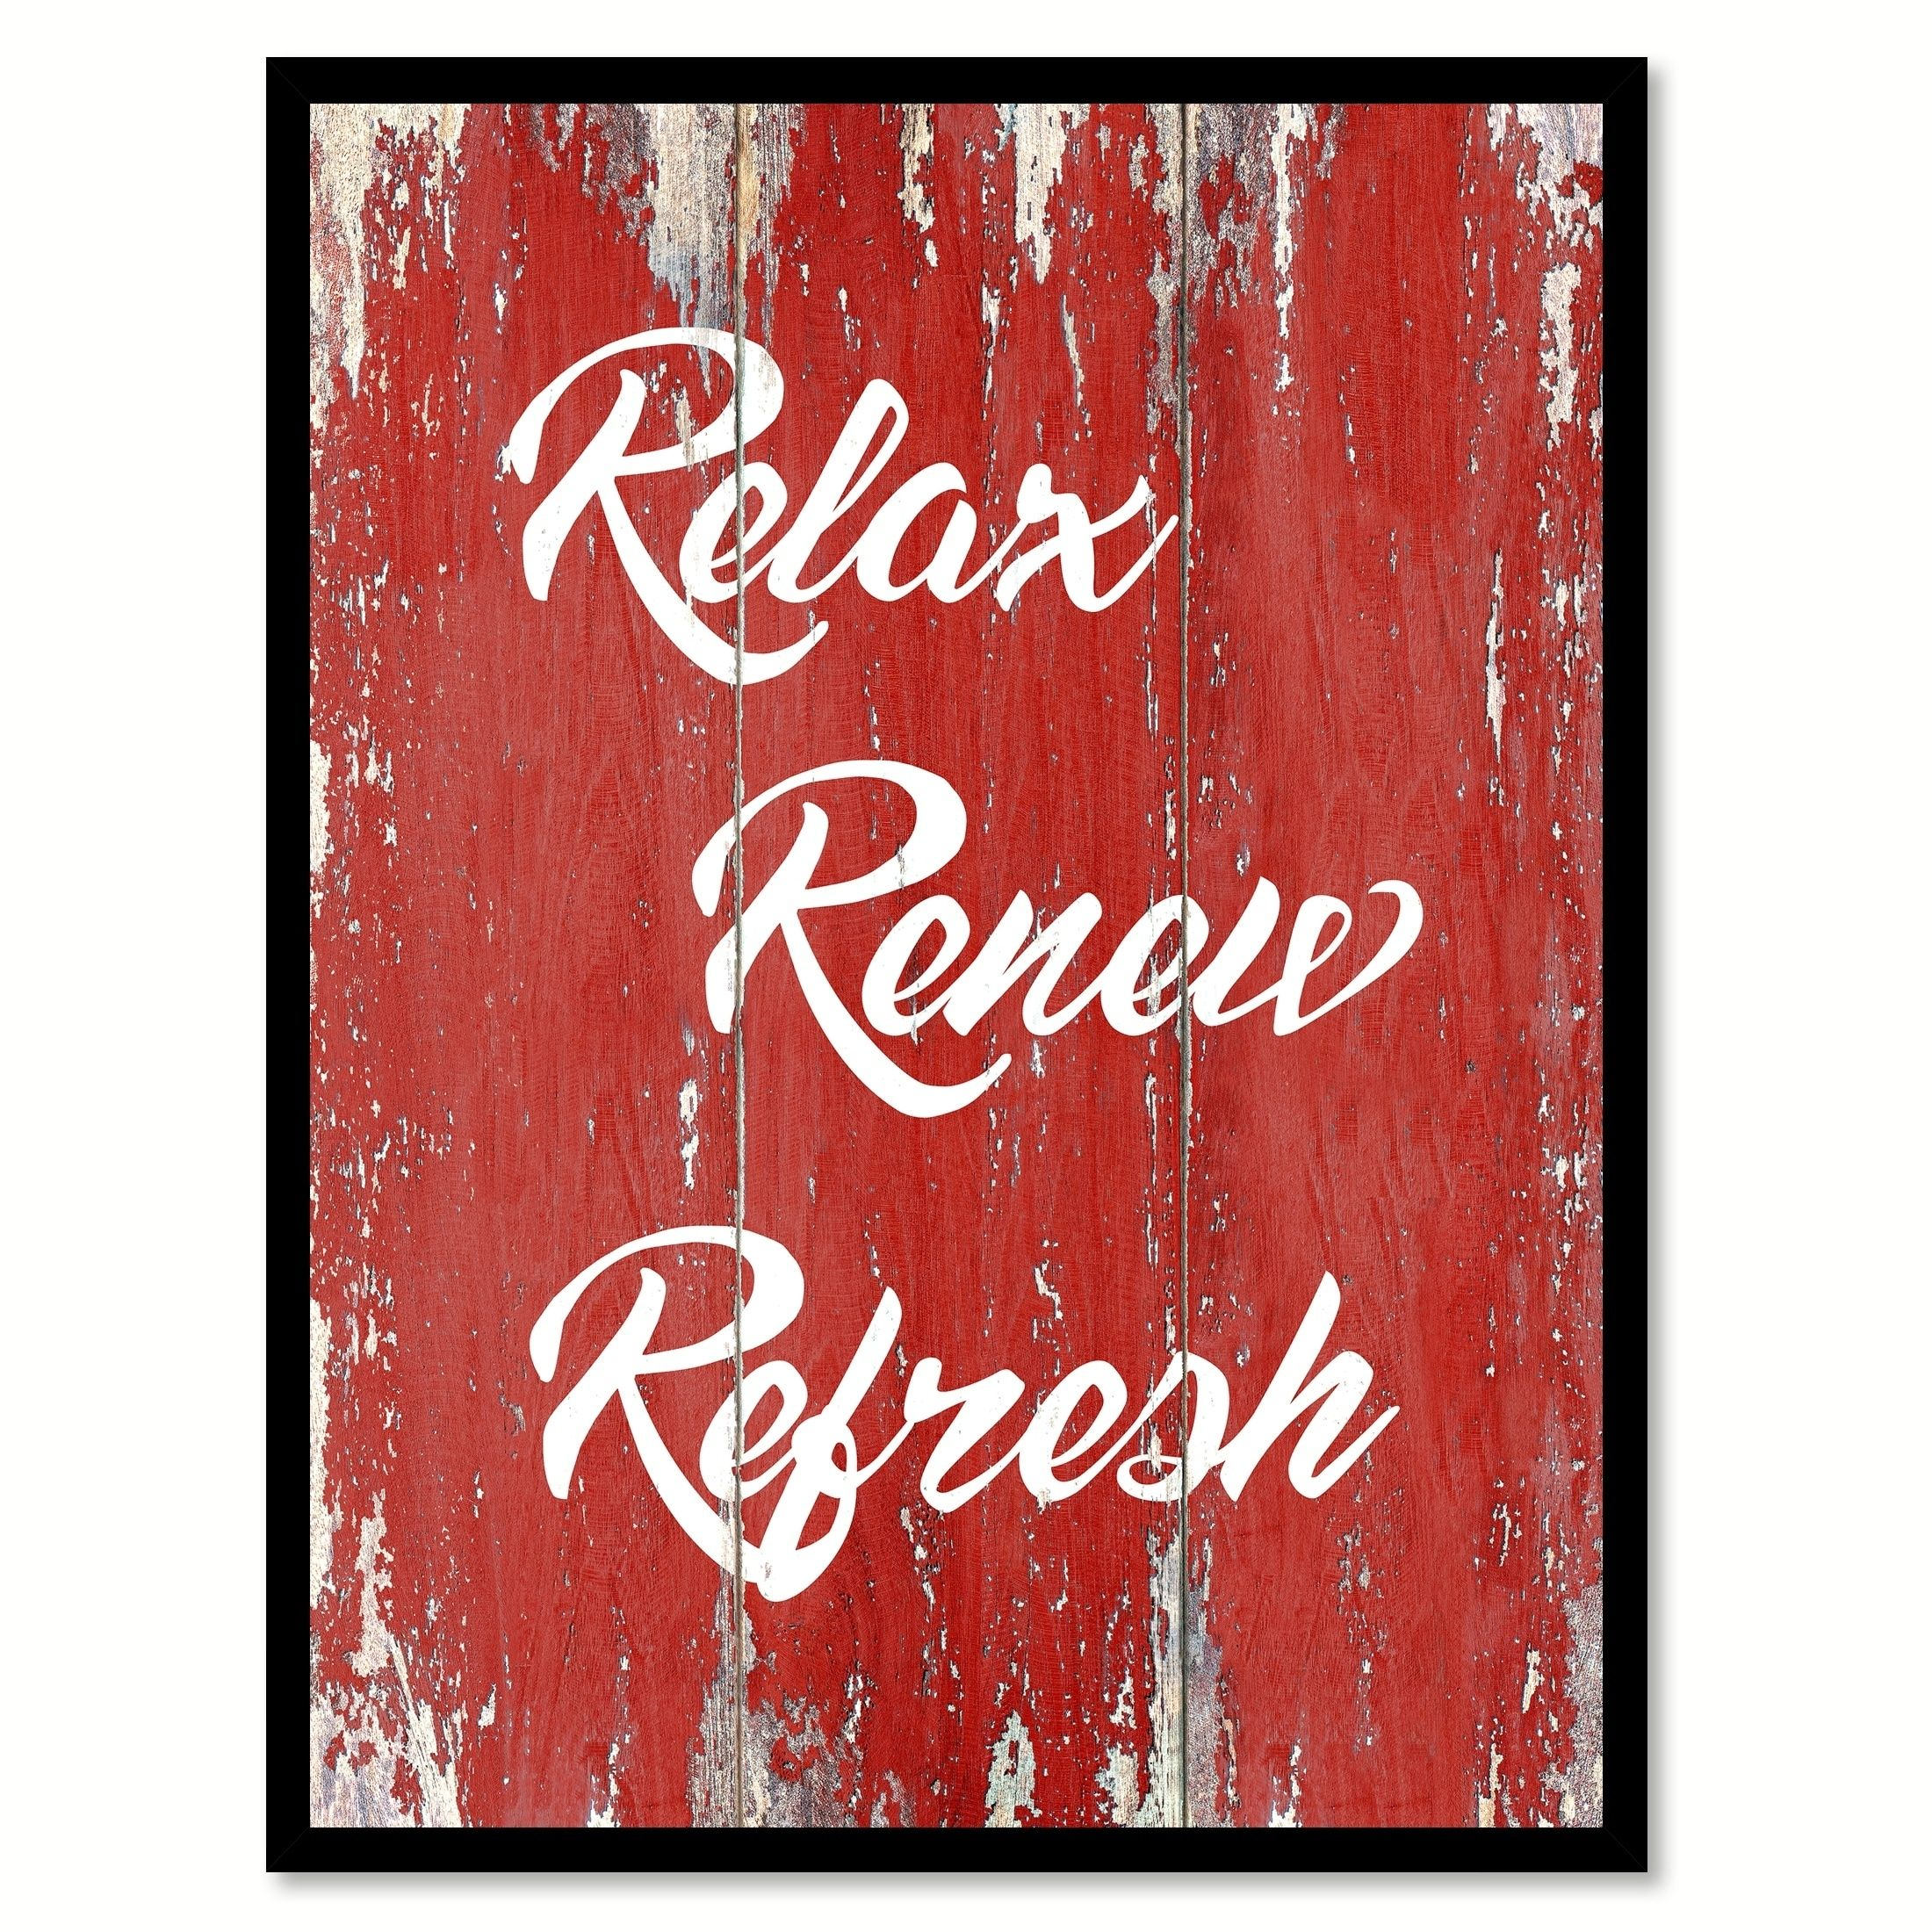 Relax Renew Refresh Motivation Quote Saying Canvas Print Picture Frame Home Decor Wall Art Bathroom Home Decor Wall Art Wall Decor Traditional Wall Decor